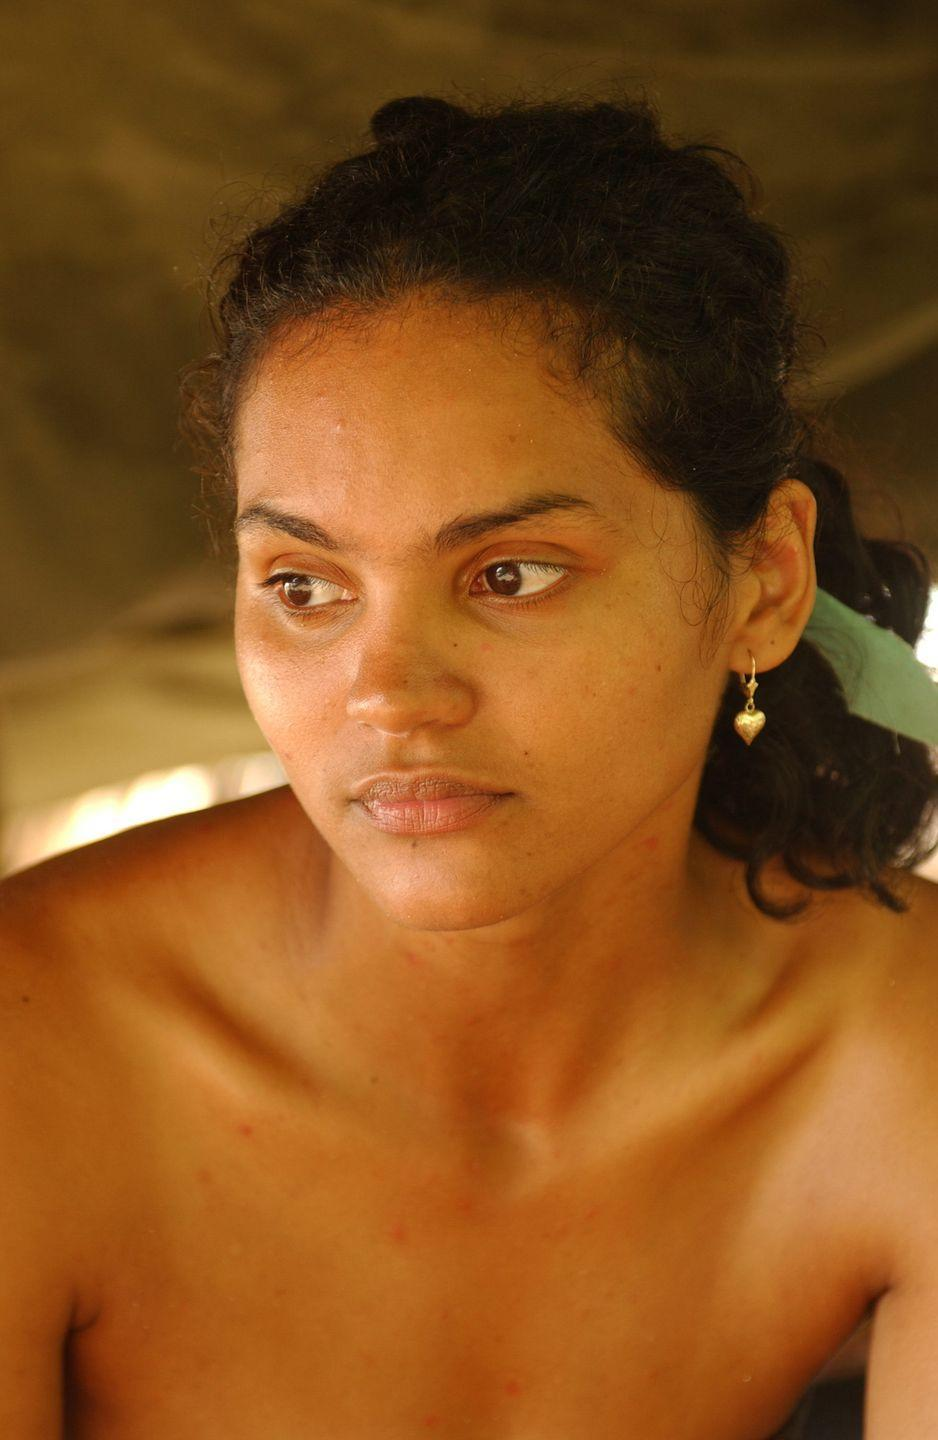 "<p><a href=""https://survivor.fandom.com/wiki/Sandra_Diaz-Twine"" rel=""nofollow noopener"" target=""_blank"" data-ylk=""slk:Sandra Diaz-Twine"" class=""link rapid-noclick-resp"">Sandra Diaz-Twine</a> was the winner of<em> Survivor: Pearl Islands</em> and <em>Survivor: Heroes vs. Villains</em>, making her the first two-time winner in the show's history. She also competed on <em>Survivor: Game Changers</em> and <em>Survivor: Winners at War</em> and served as a mentor for <em>Survivor: Island of the Idols</em>. She told <em><a href=""https://parade.com/545108/joshwigler/survivor-game-changers-sandra-diaz-twine/"" rel=""nofollow noopener"" target=""_blank"" data-ylk=""slk:Parade"" class=""link rapid-noclick-resp"">Parade</a> </em>ahead of the <em>Game Changers</em> season, ""My game is simple. It's called self-preservation. As long as it's not me, I don't give a damn who goes home.""</p>"